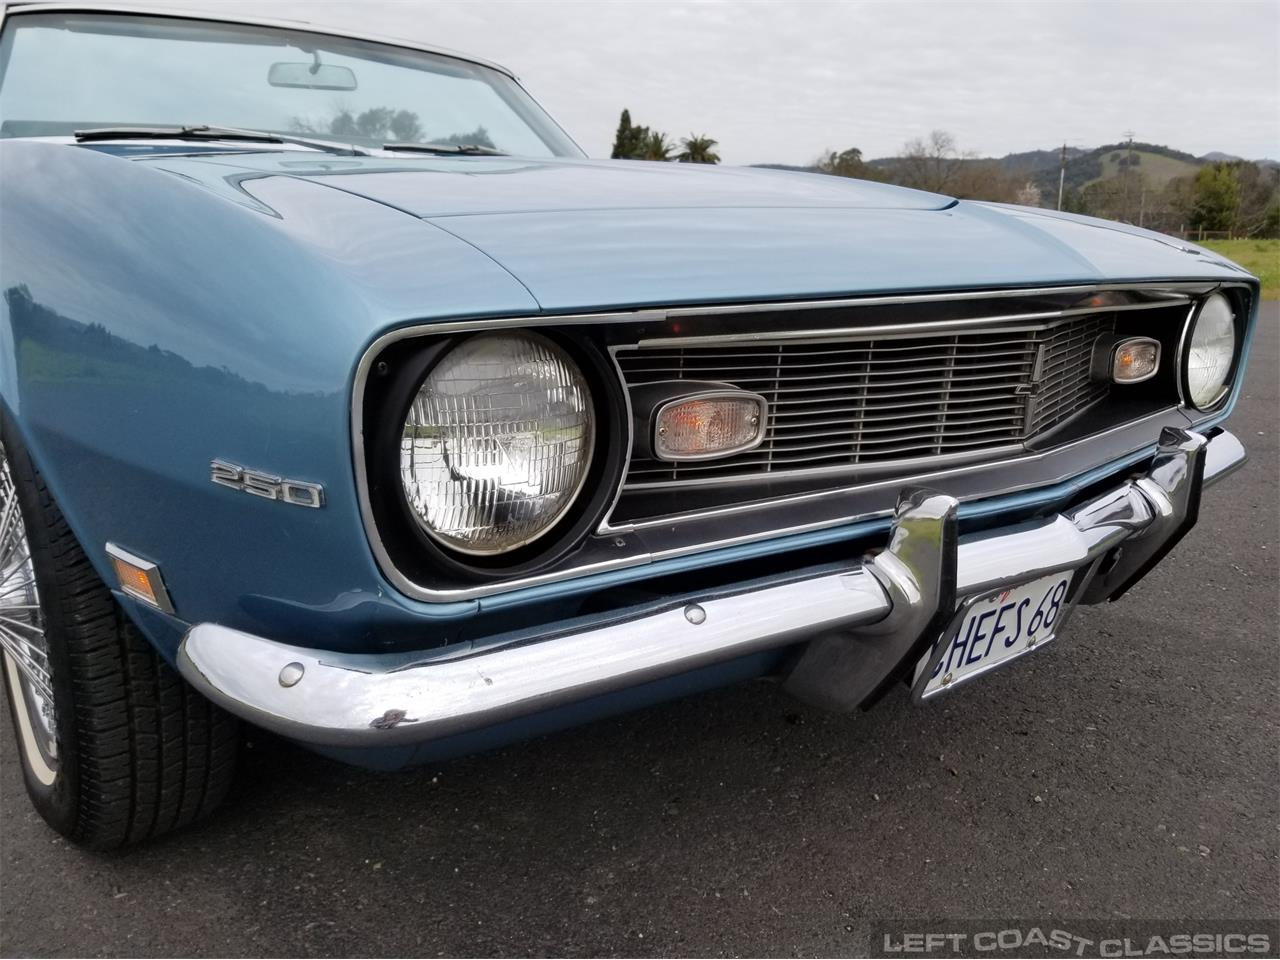 Large Picture of 1968 Chevrolet Camaro - $33,900.00 Offered by Left Coast Classics - PNQK